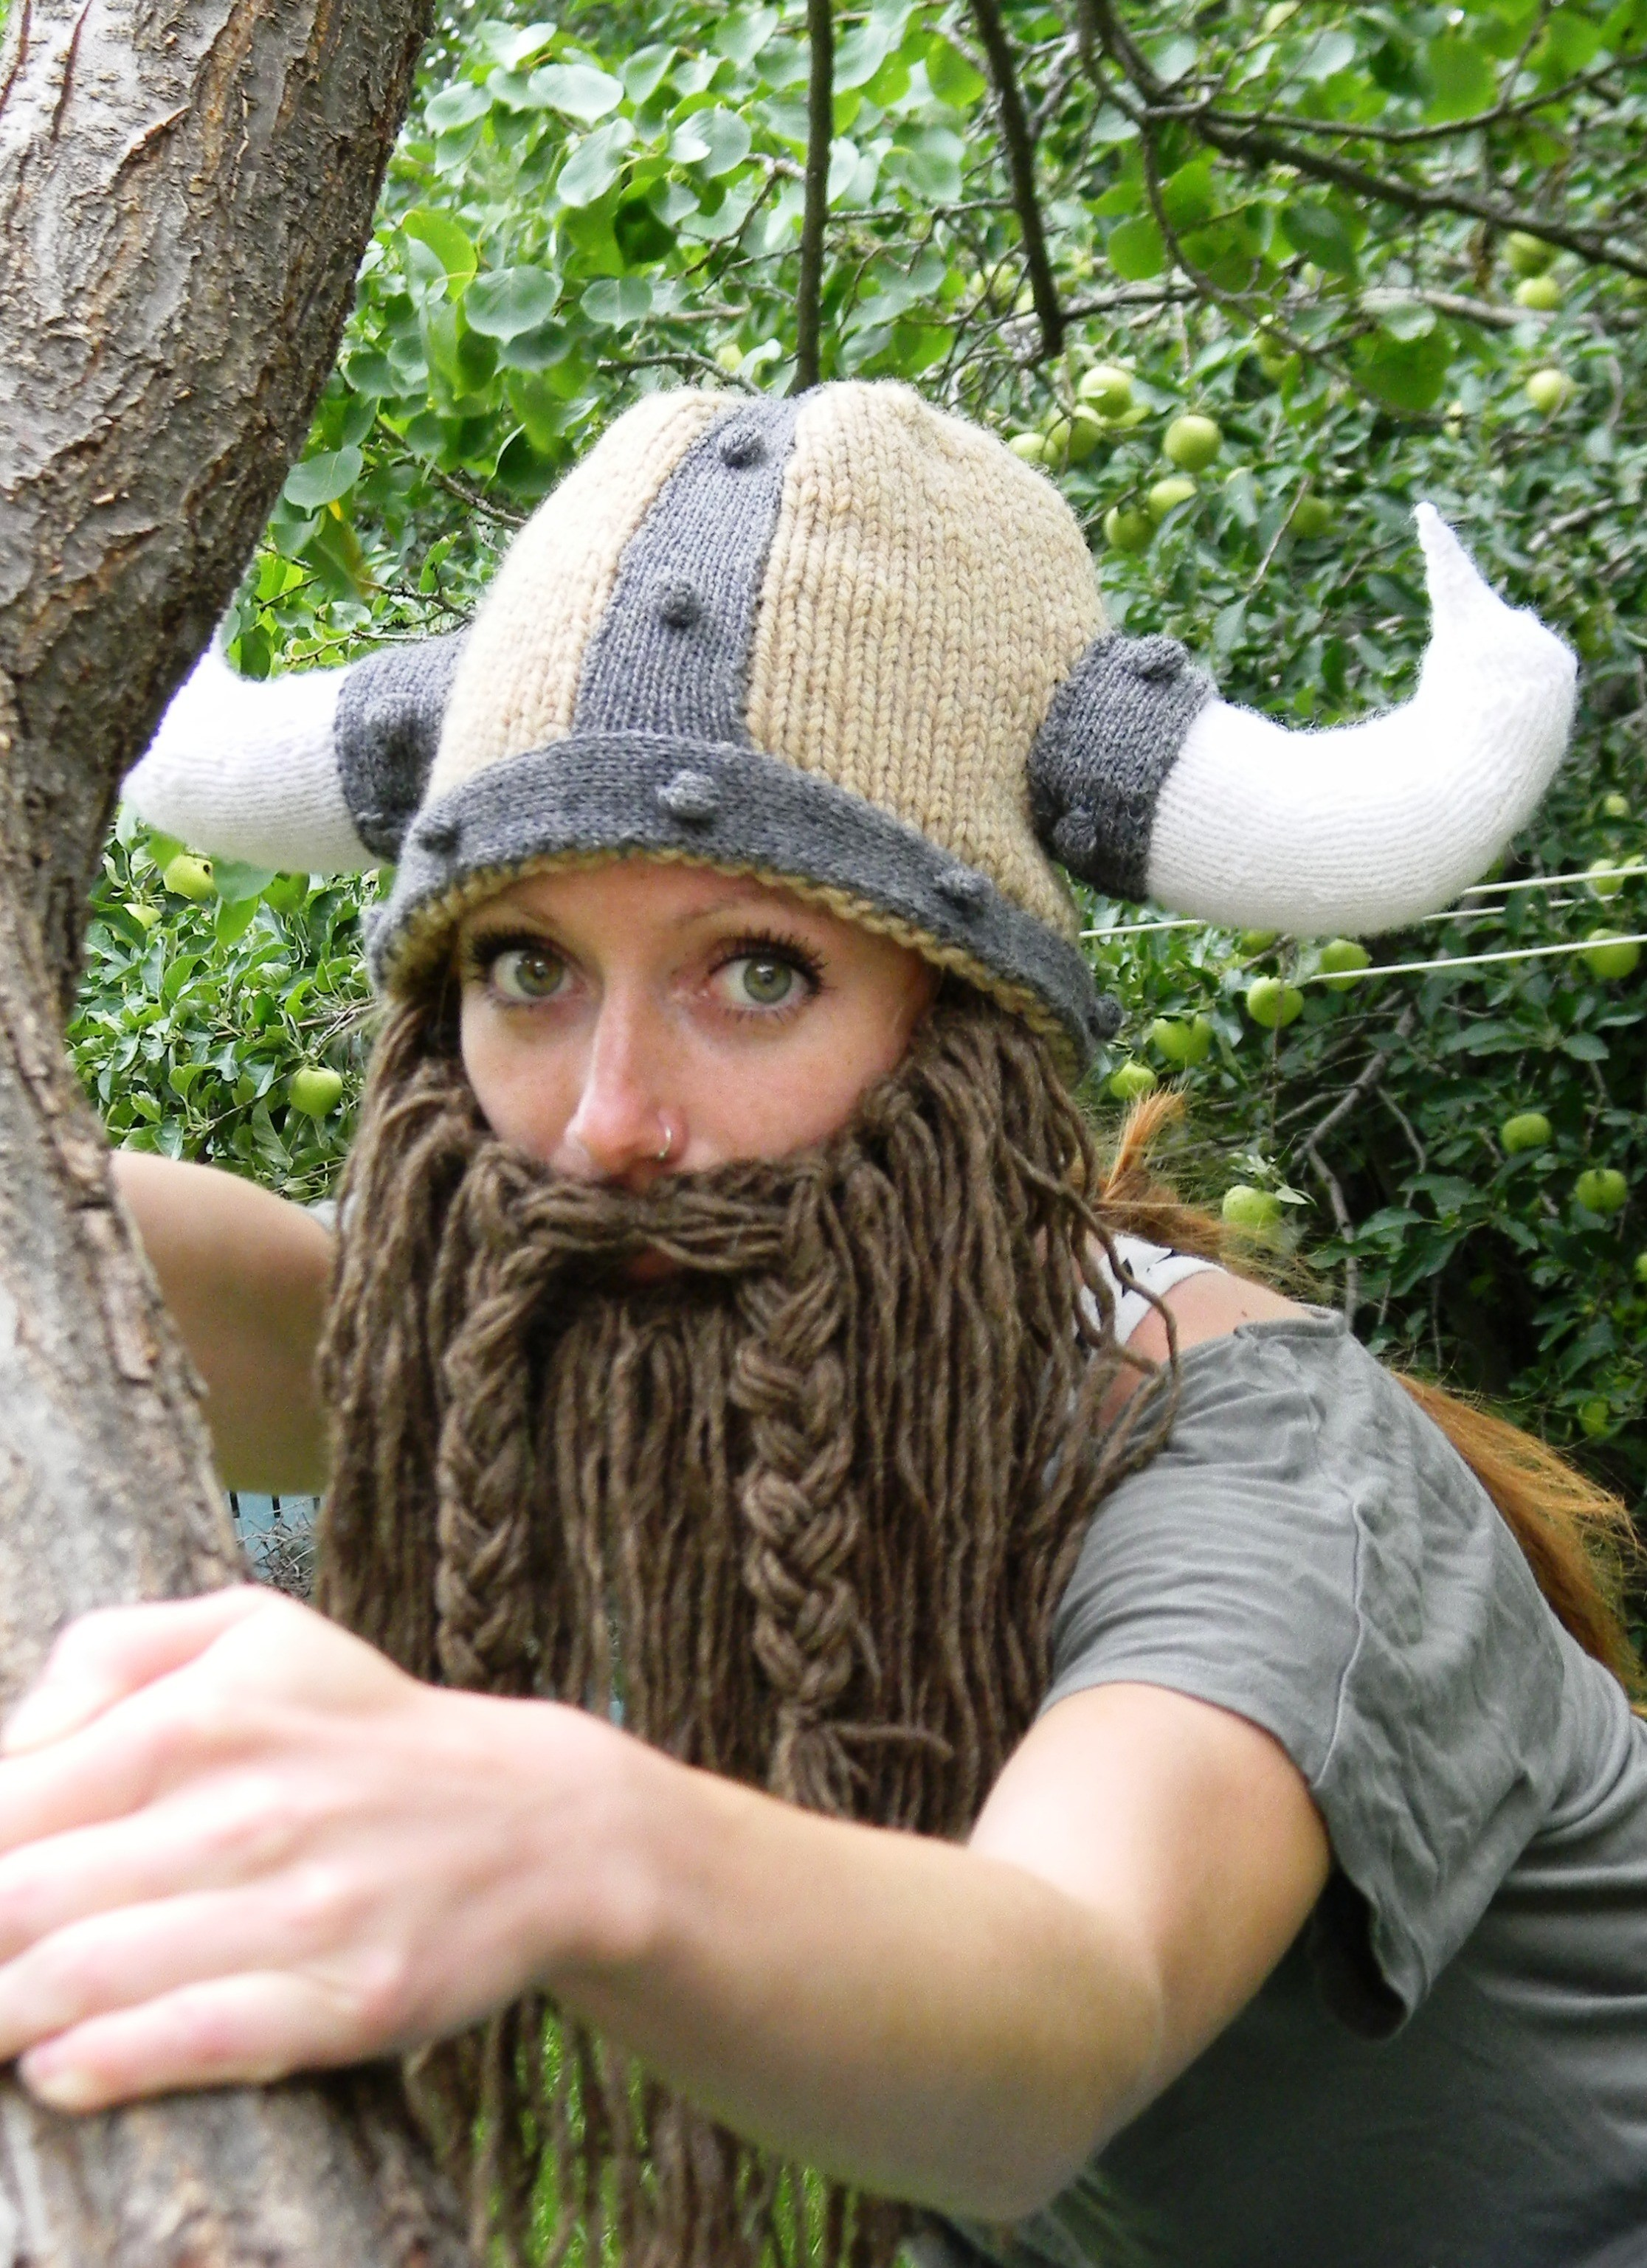 Knitting Patterns For Viking Hat : Viking Knit Hat Patterns A Knitting Blog